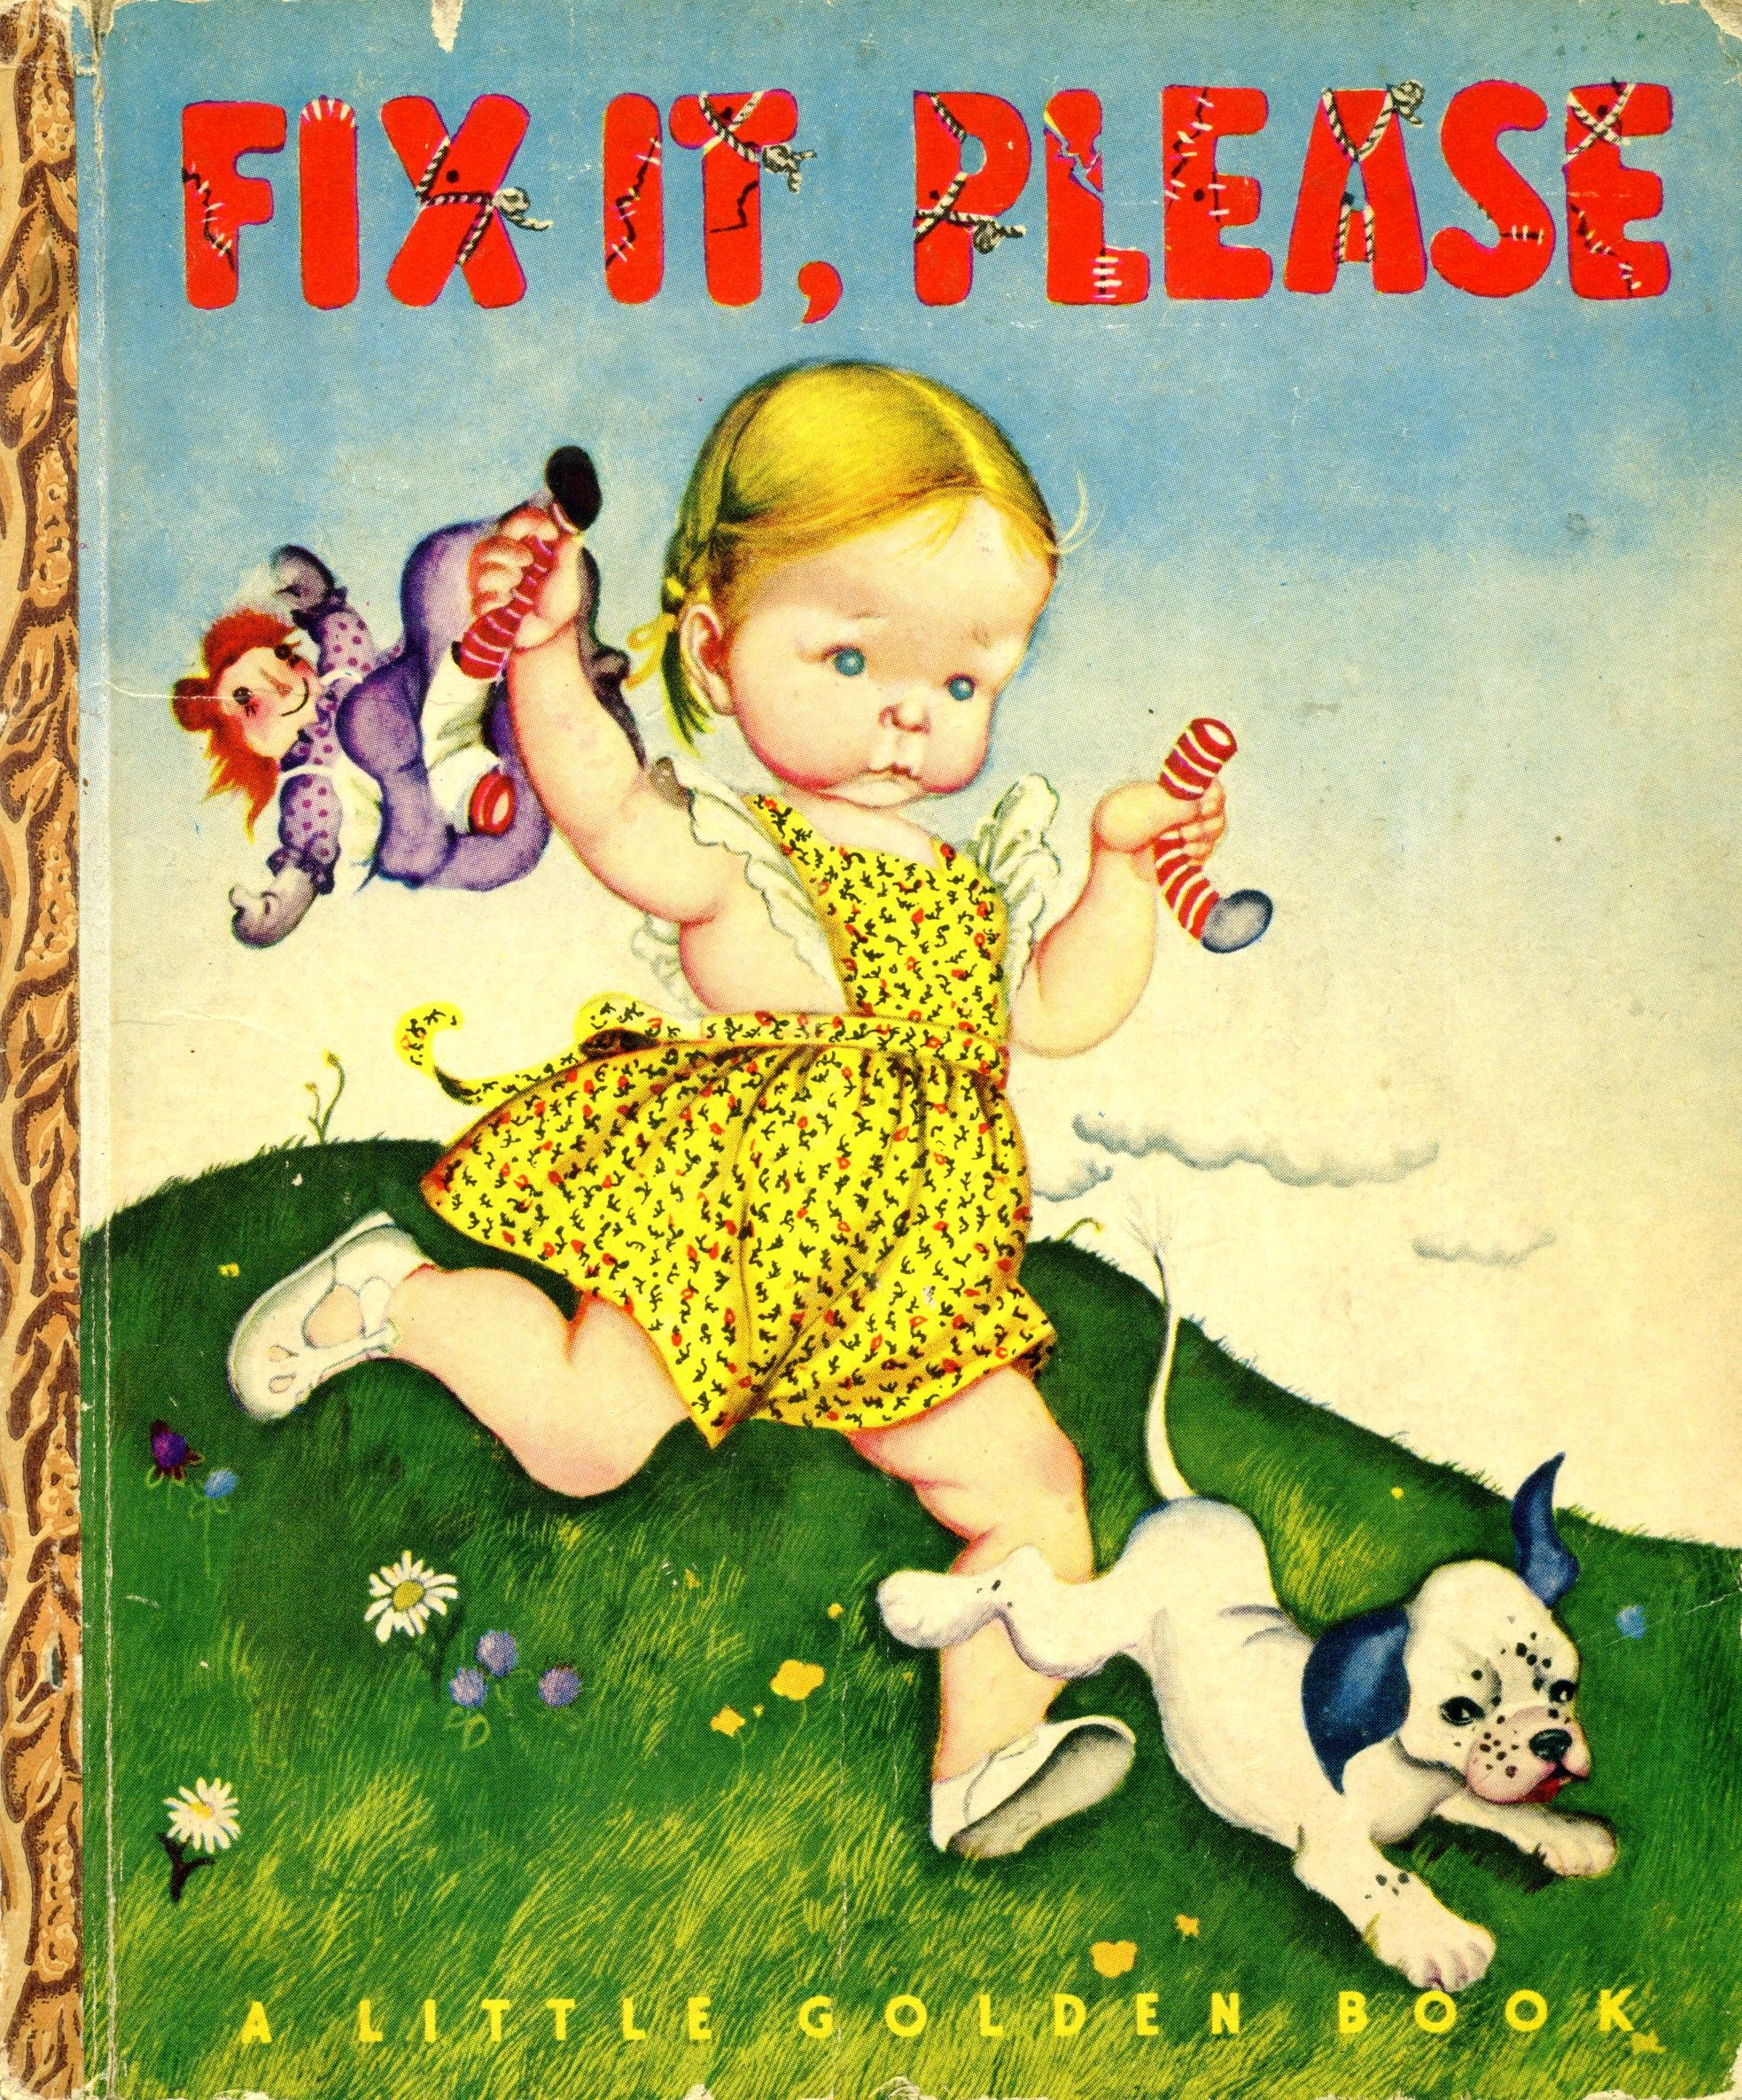 Fix It Please 1947 A Edition Pictures By Eloise Wilkin Little Golden Books Childhood Books Old Children S Books